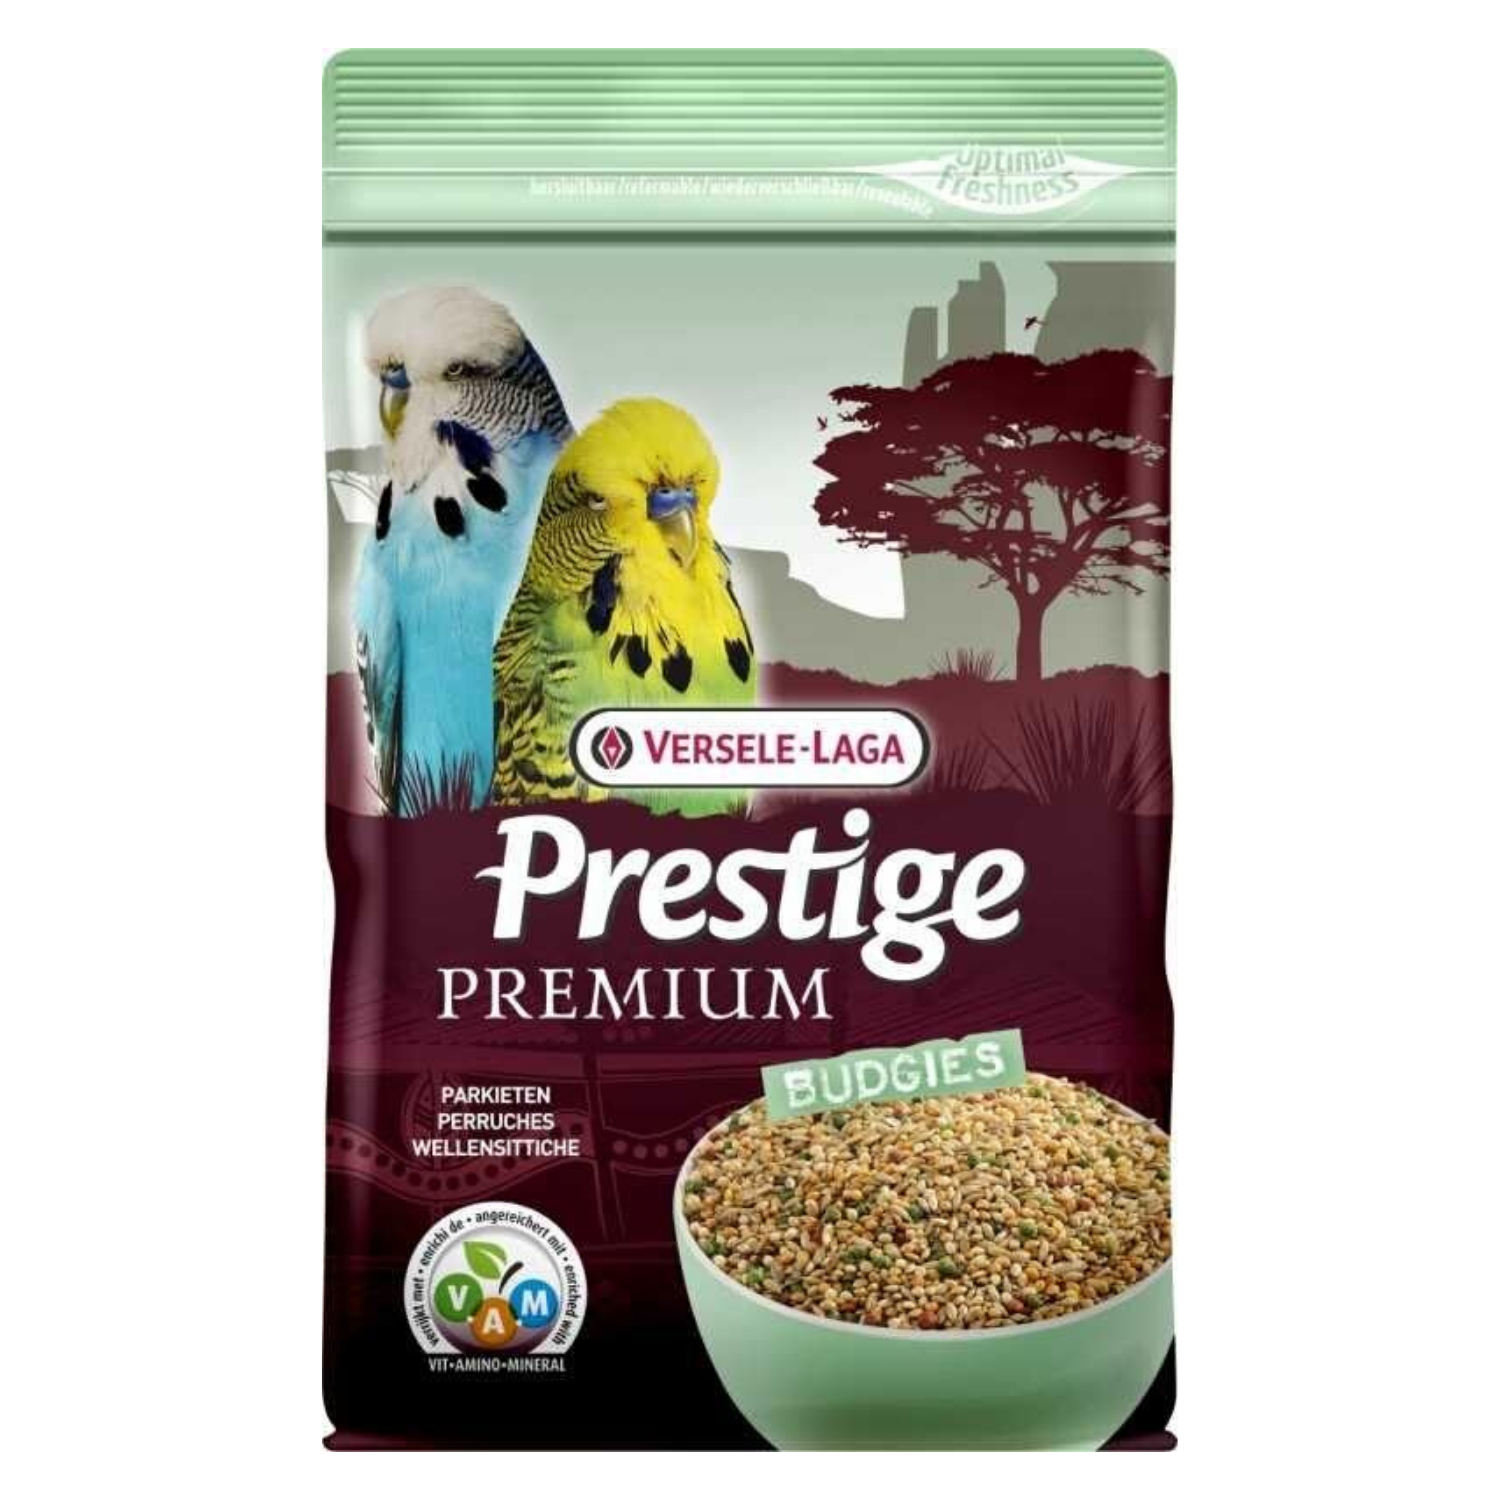 Versele Laga Prestige Premium Seed Mixture for Budgies - 1kg / 2.5kg